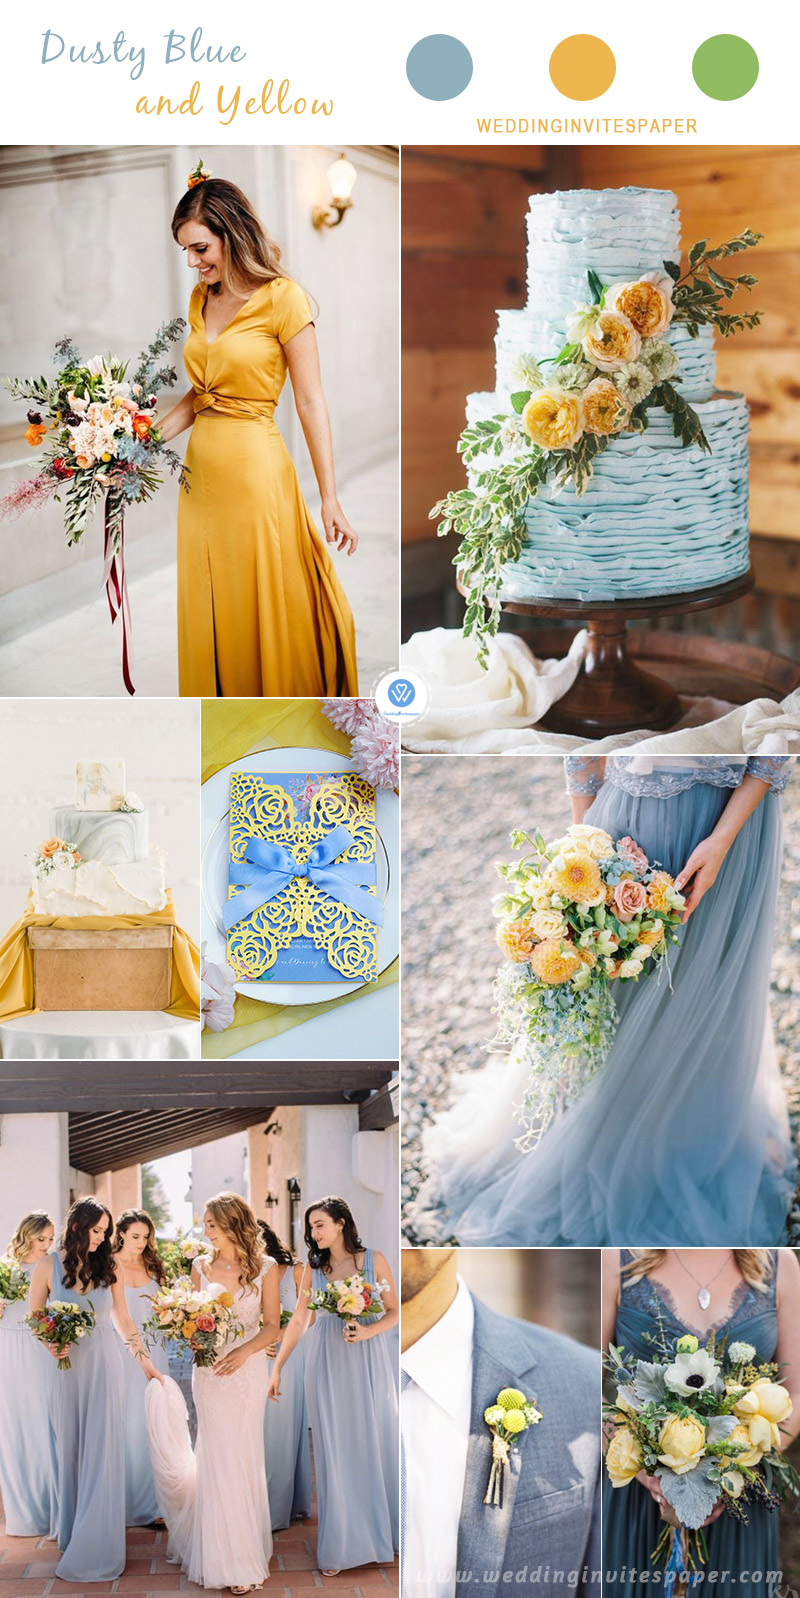 4.-Dusty-Blue-and-Yellow.jpg